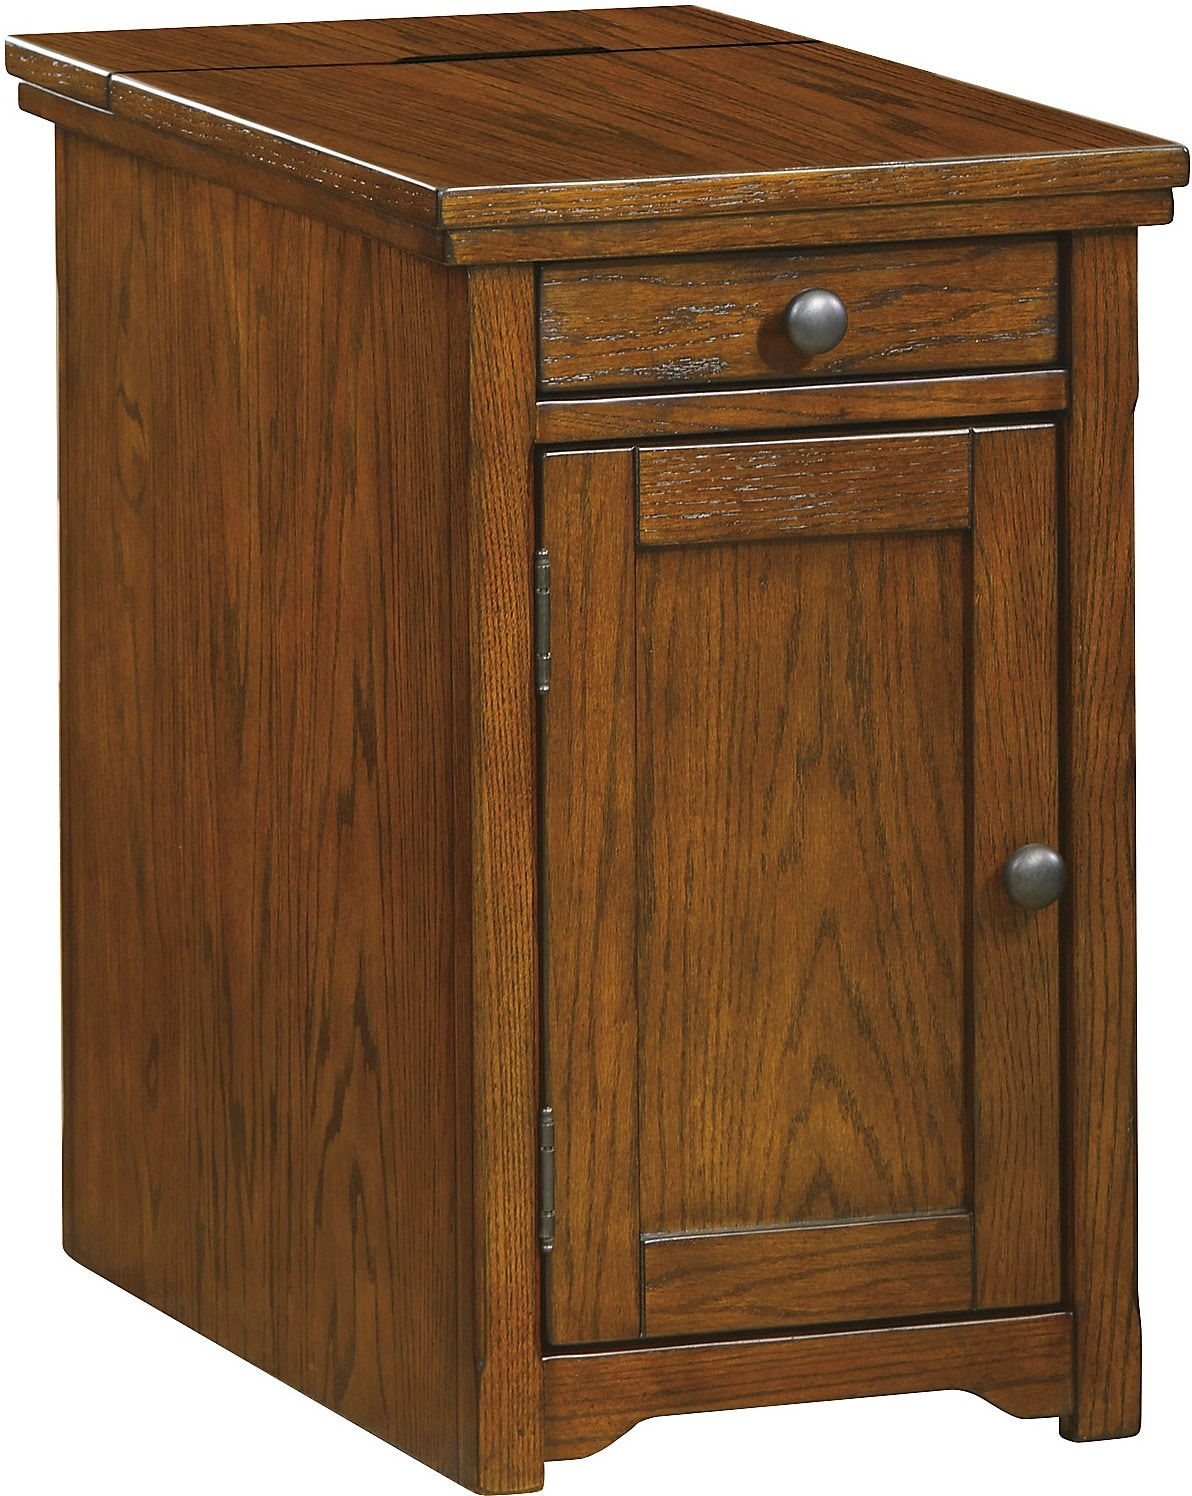 Coventry Accent Table – Burnished Brown